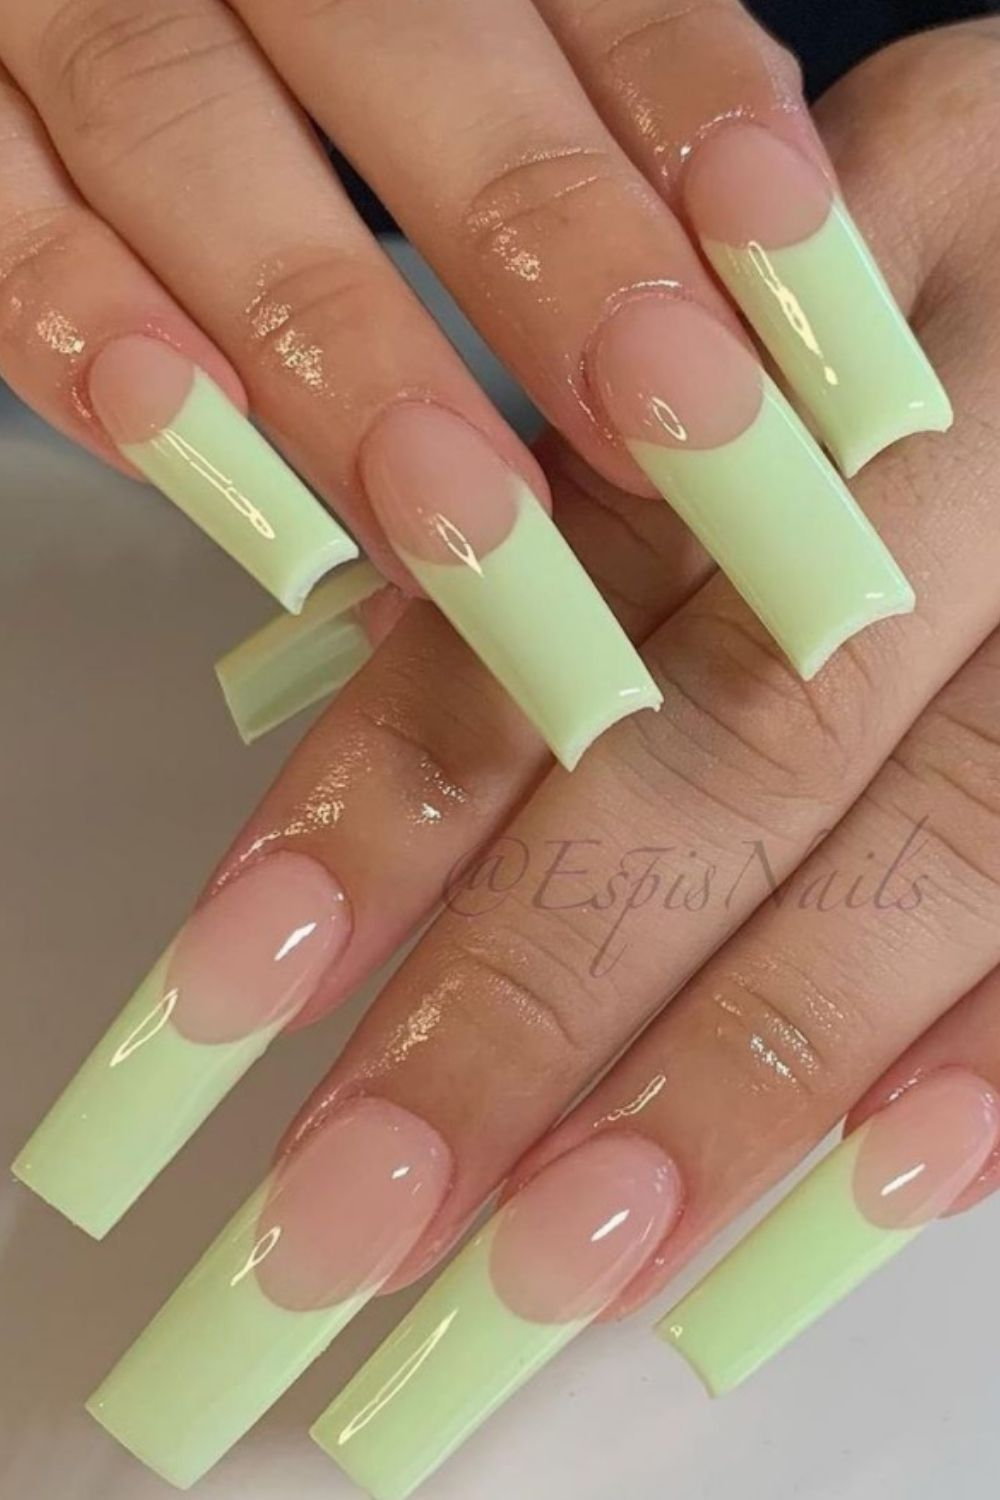 High Gloss Gold and Tailored Rhinestone Nail Art Coffin Nails